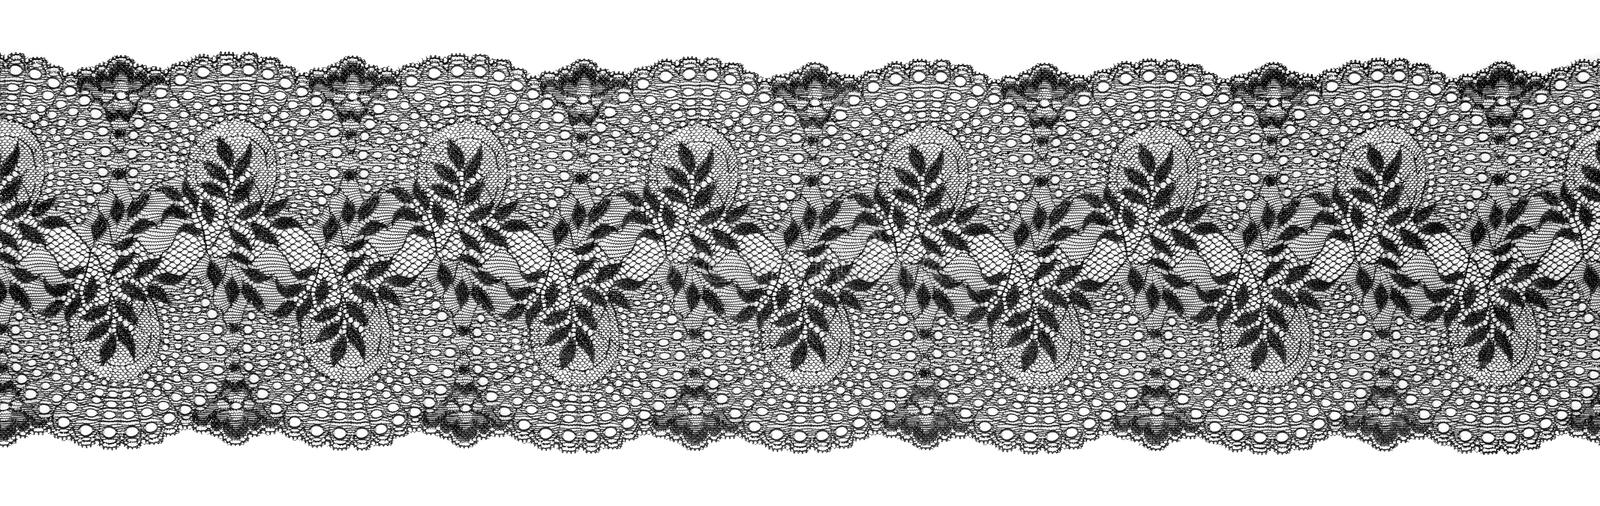 Embroidered Lace Trim Ribbon, Needlework Border, Embroidly. Fabric Pattern, Isolated Over White Background stock photo